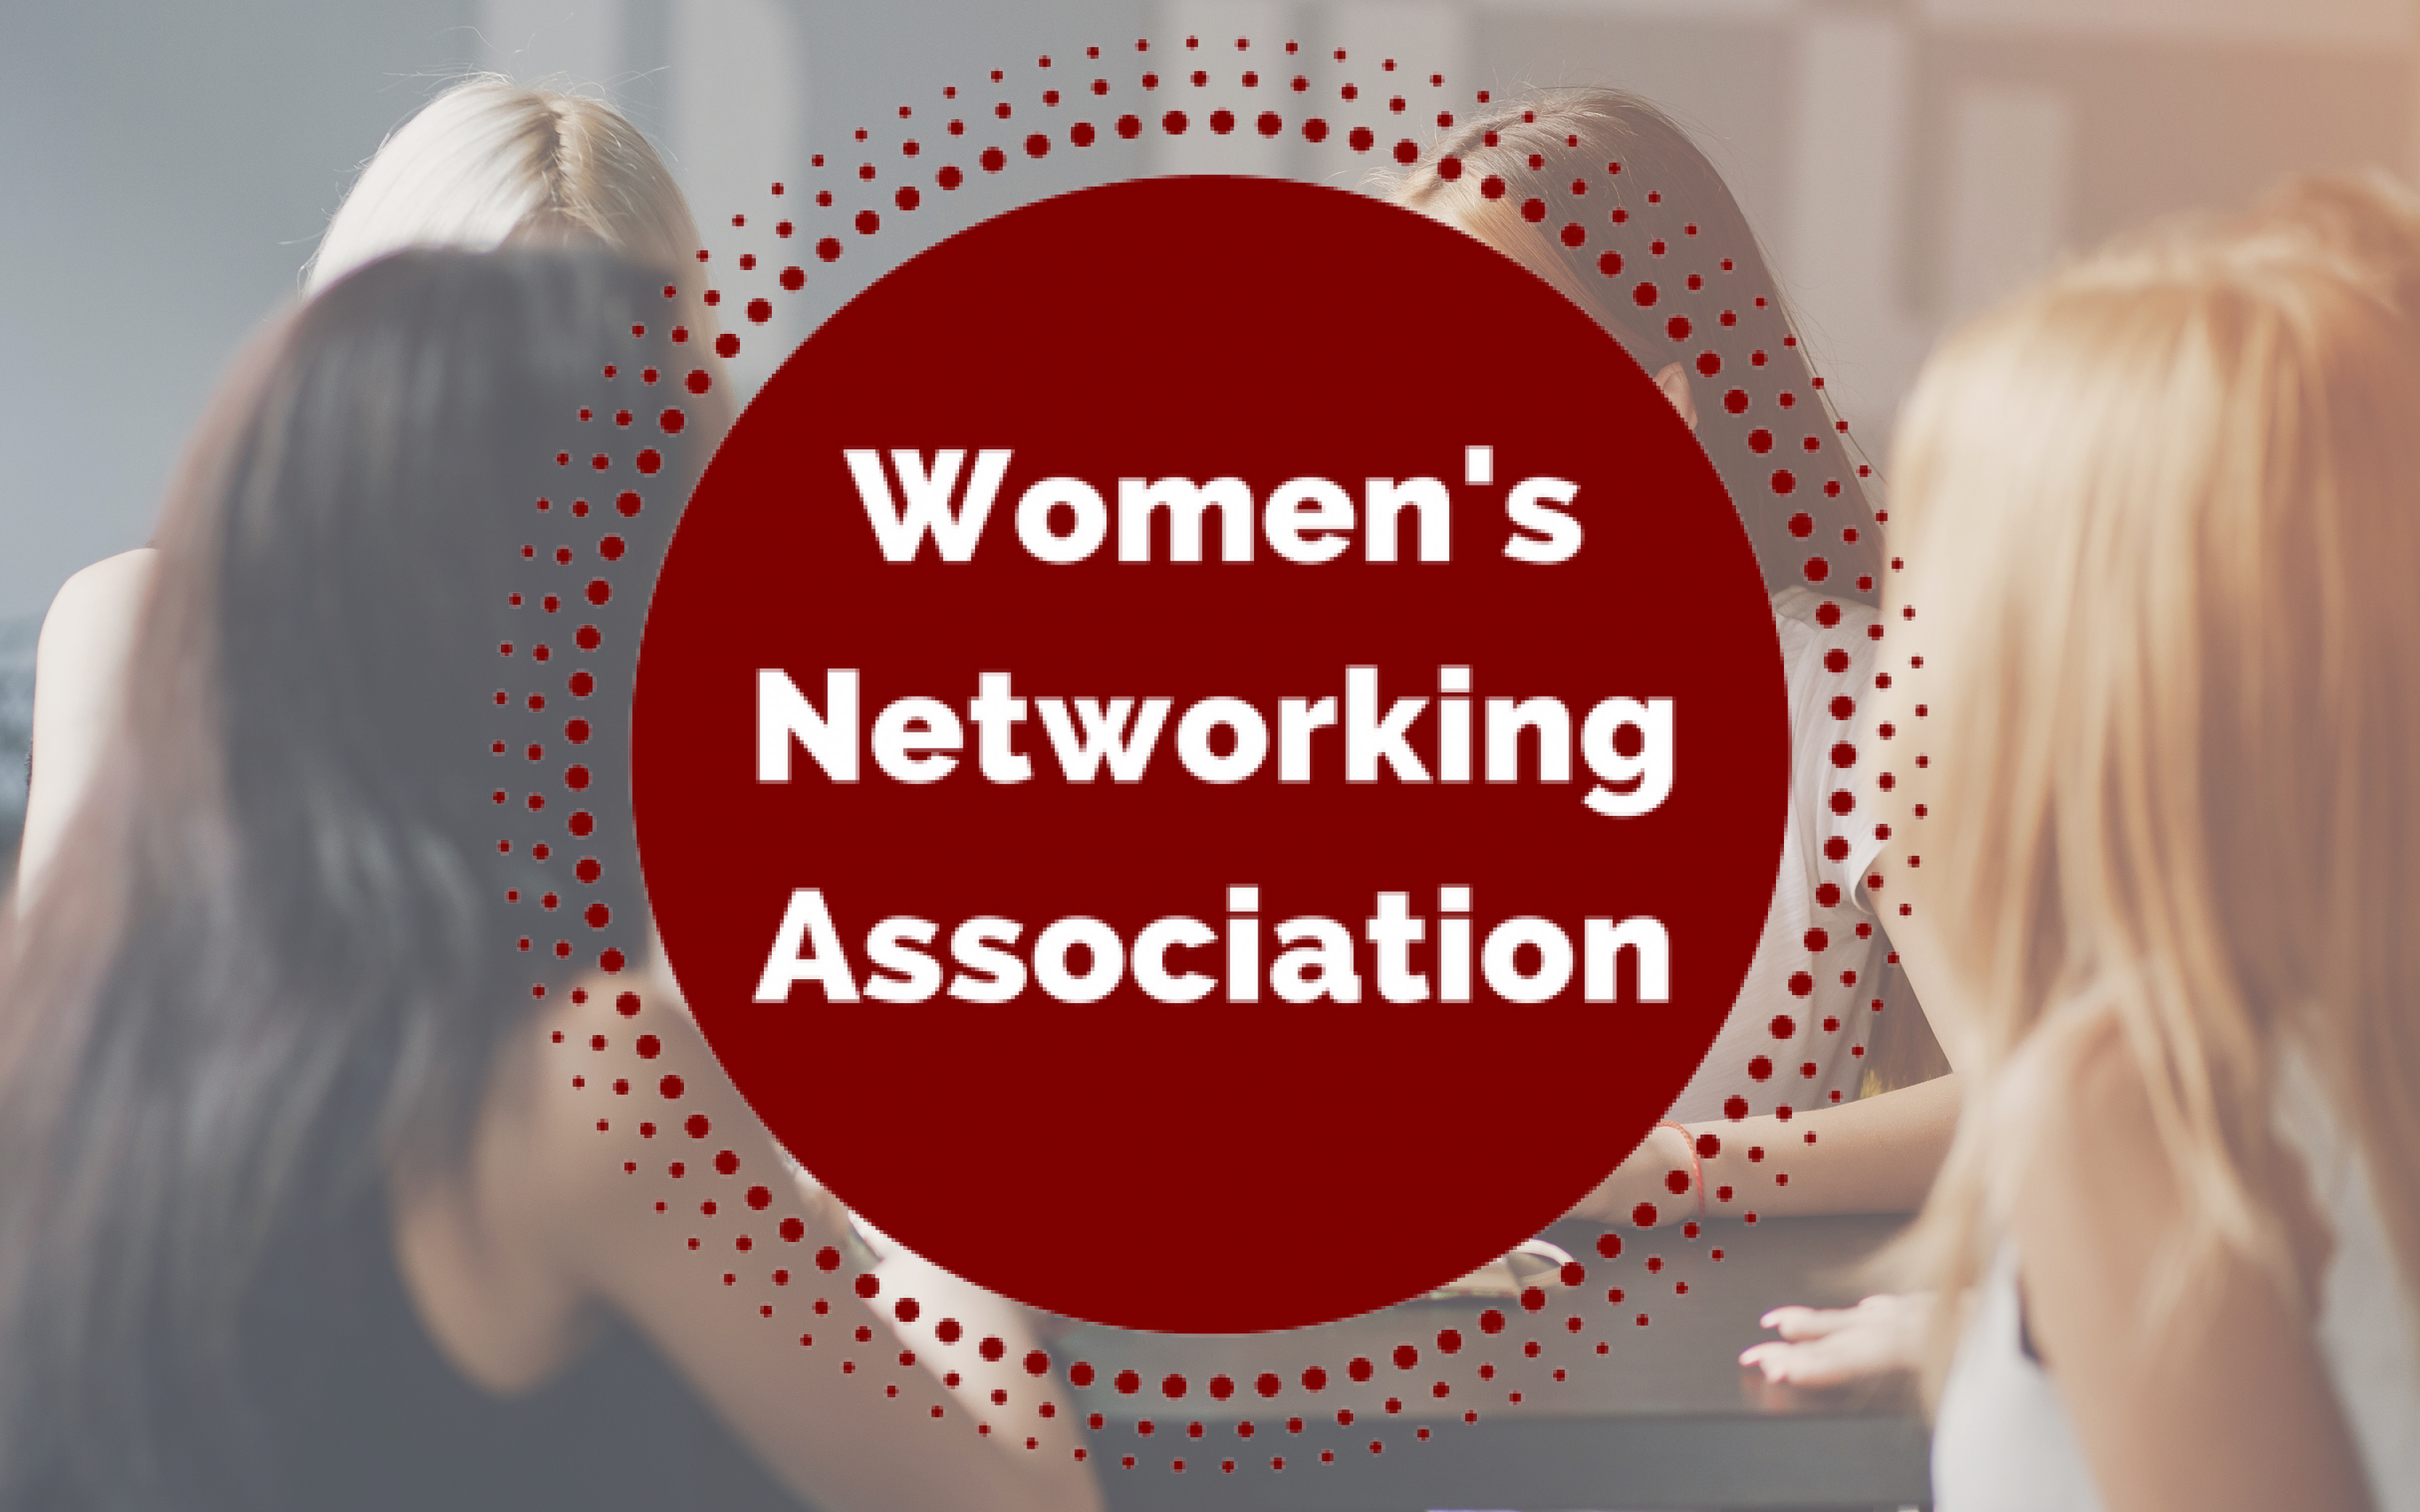 Women's Networking Association Image